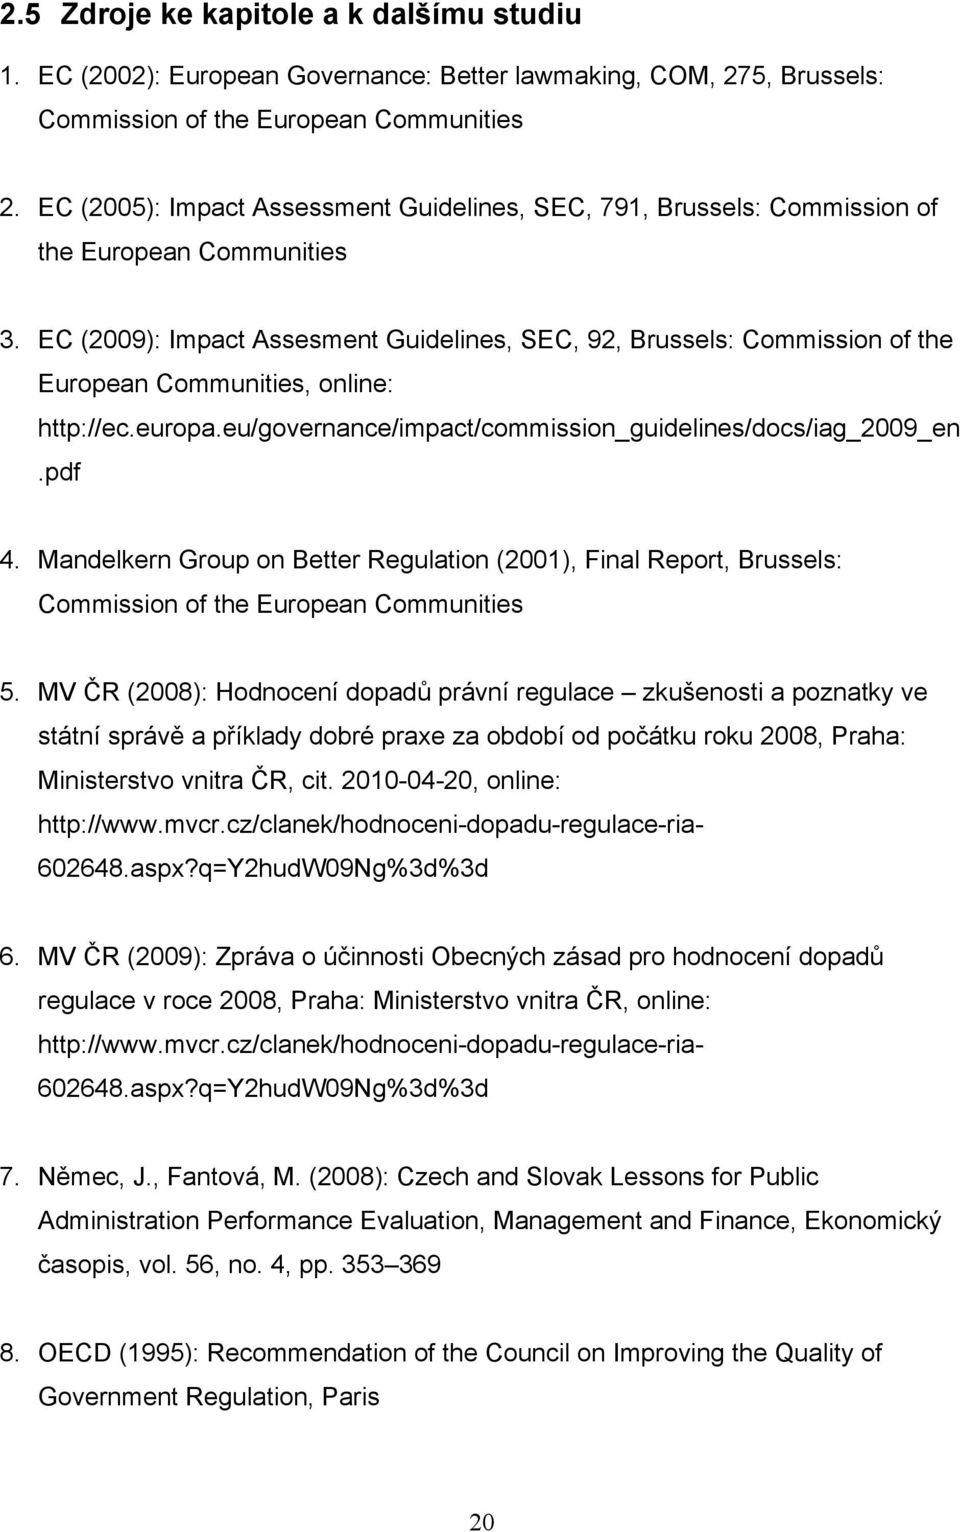 EC (2009): Impact Assesment Guidelines, SEC, 92, Brussels: Commission of the European Communities, online: http://ec.europa.eu/governance/impact/commission_guidelines/docs/iag_2009_en.pdf 4.